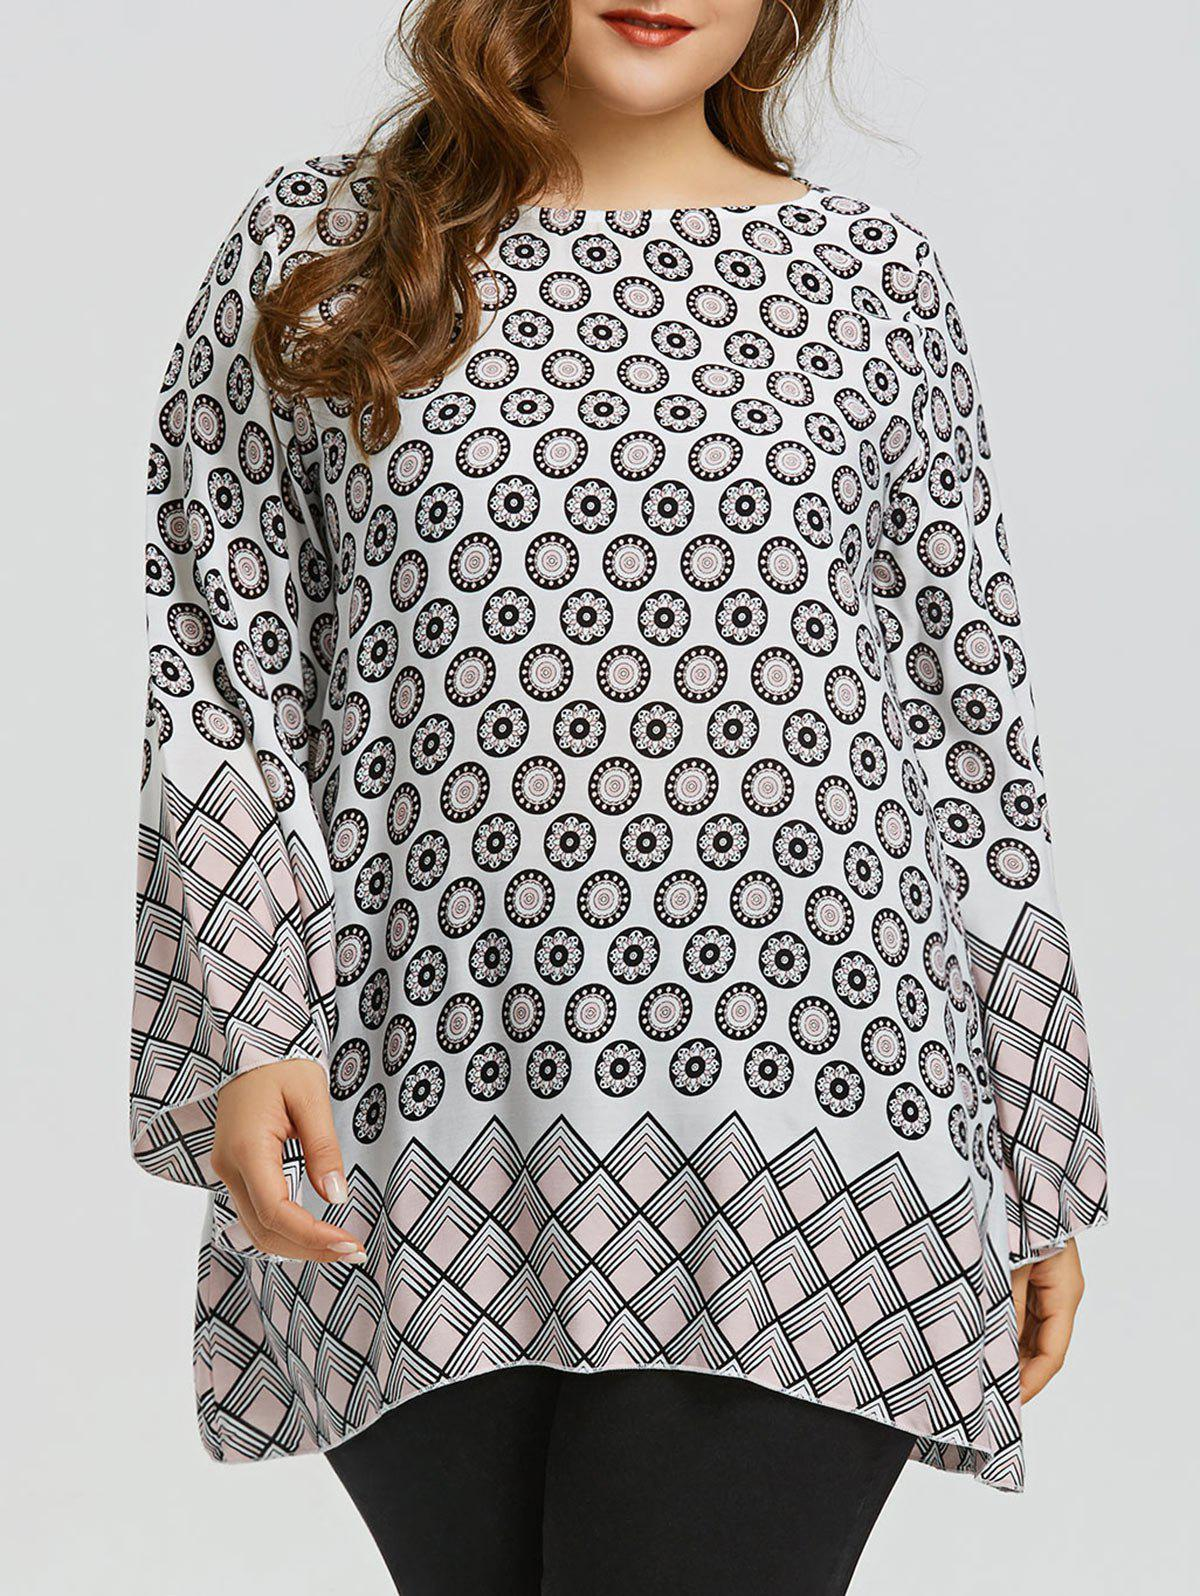 Ethnic Floral Print Plus Size Top - WHITE 4XL